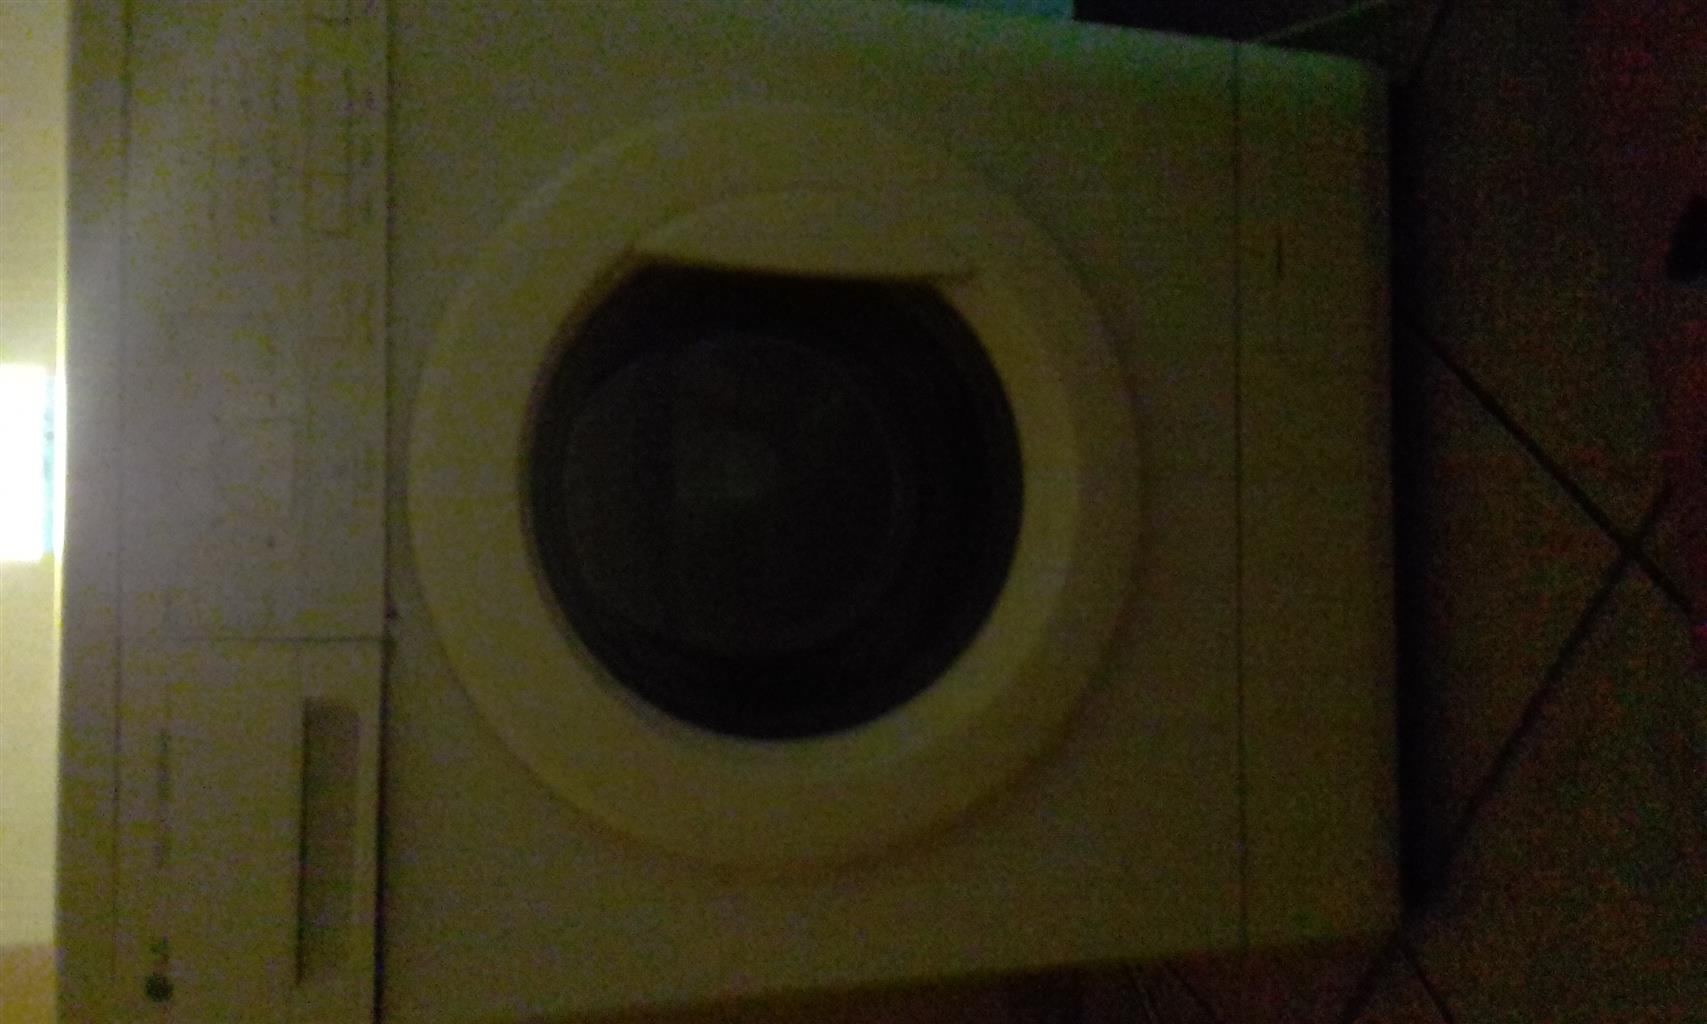 LG Washing Machine for parts